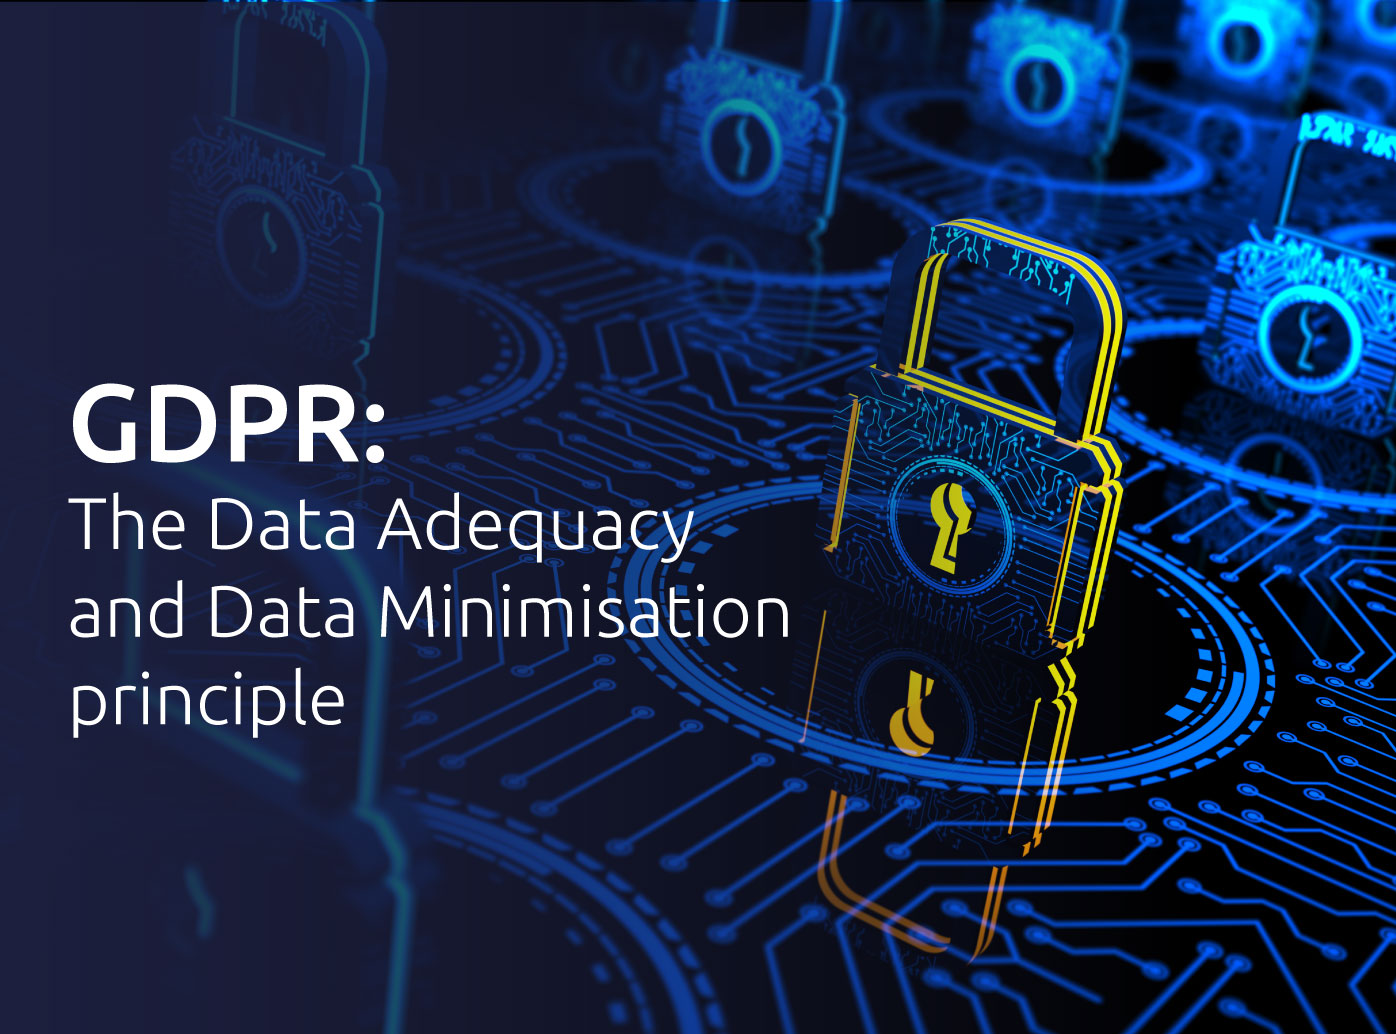 GDPR: the Data Adequacy and Data Minimisation principle